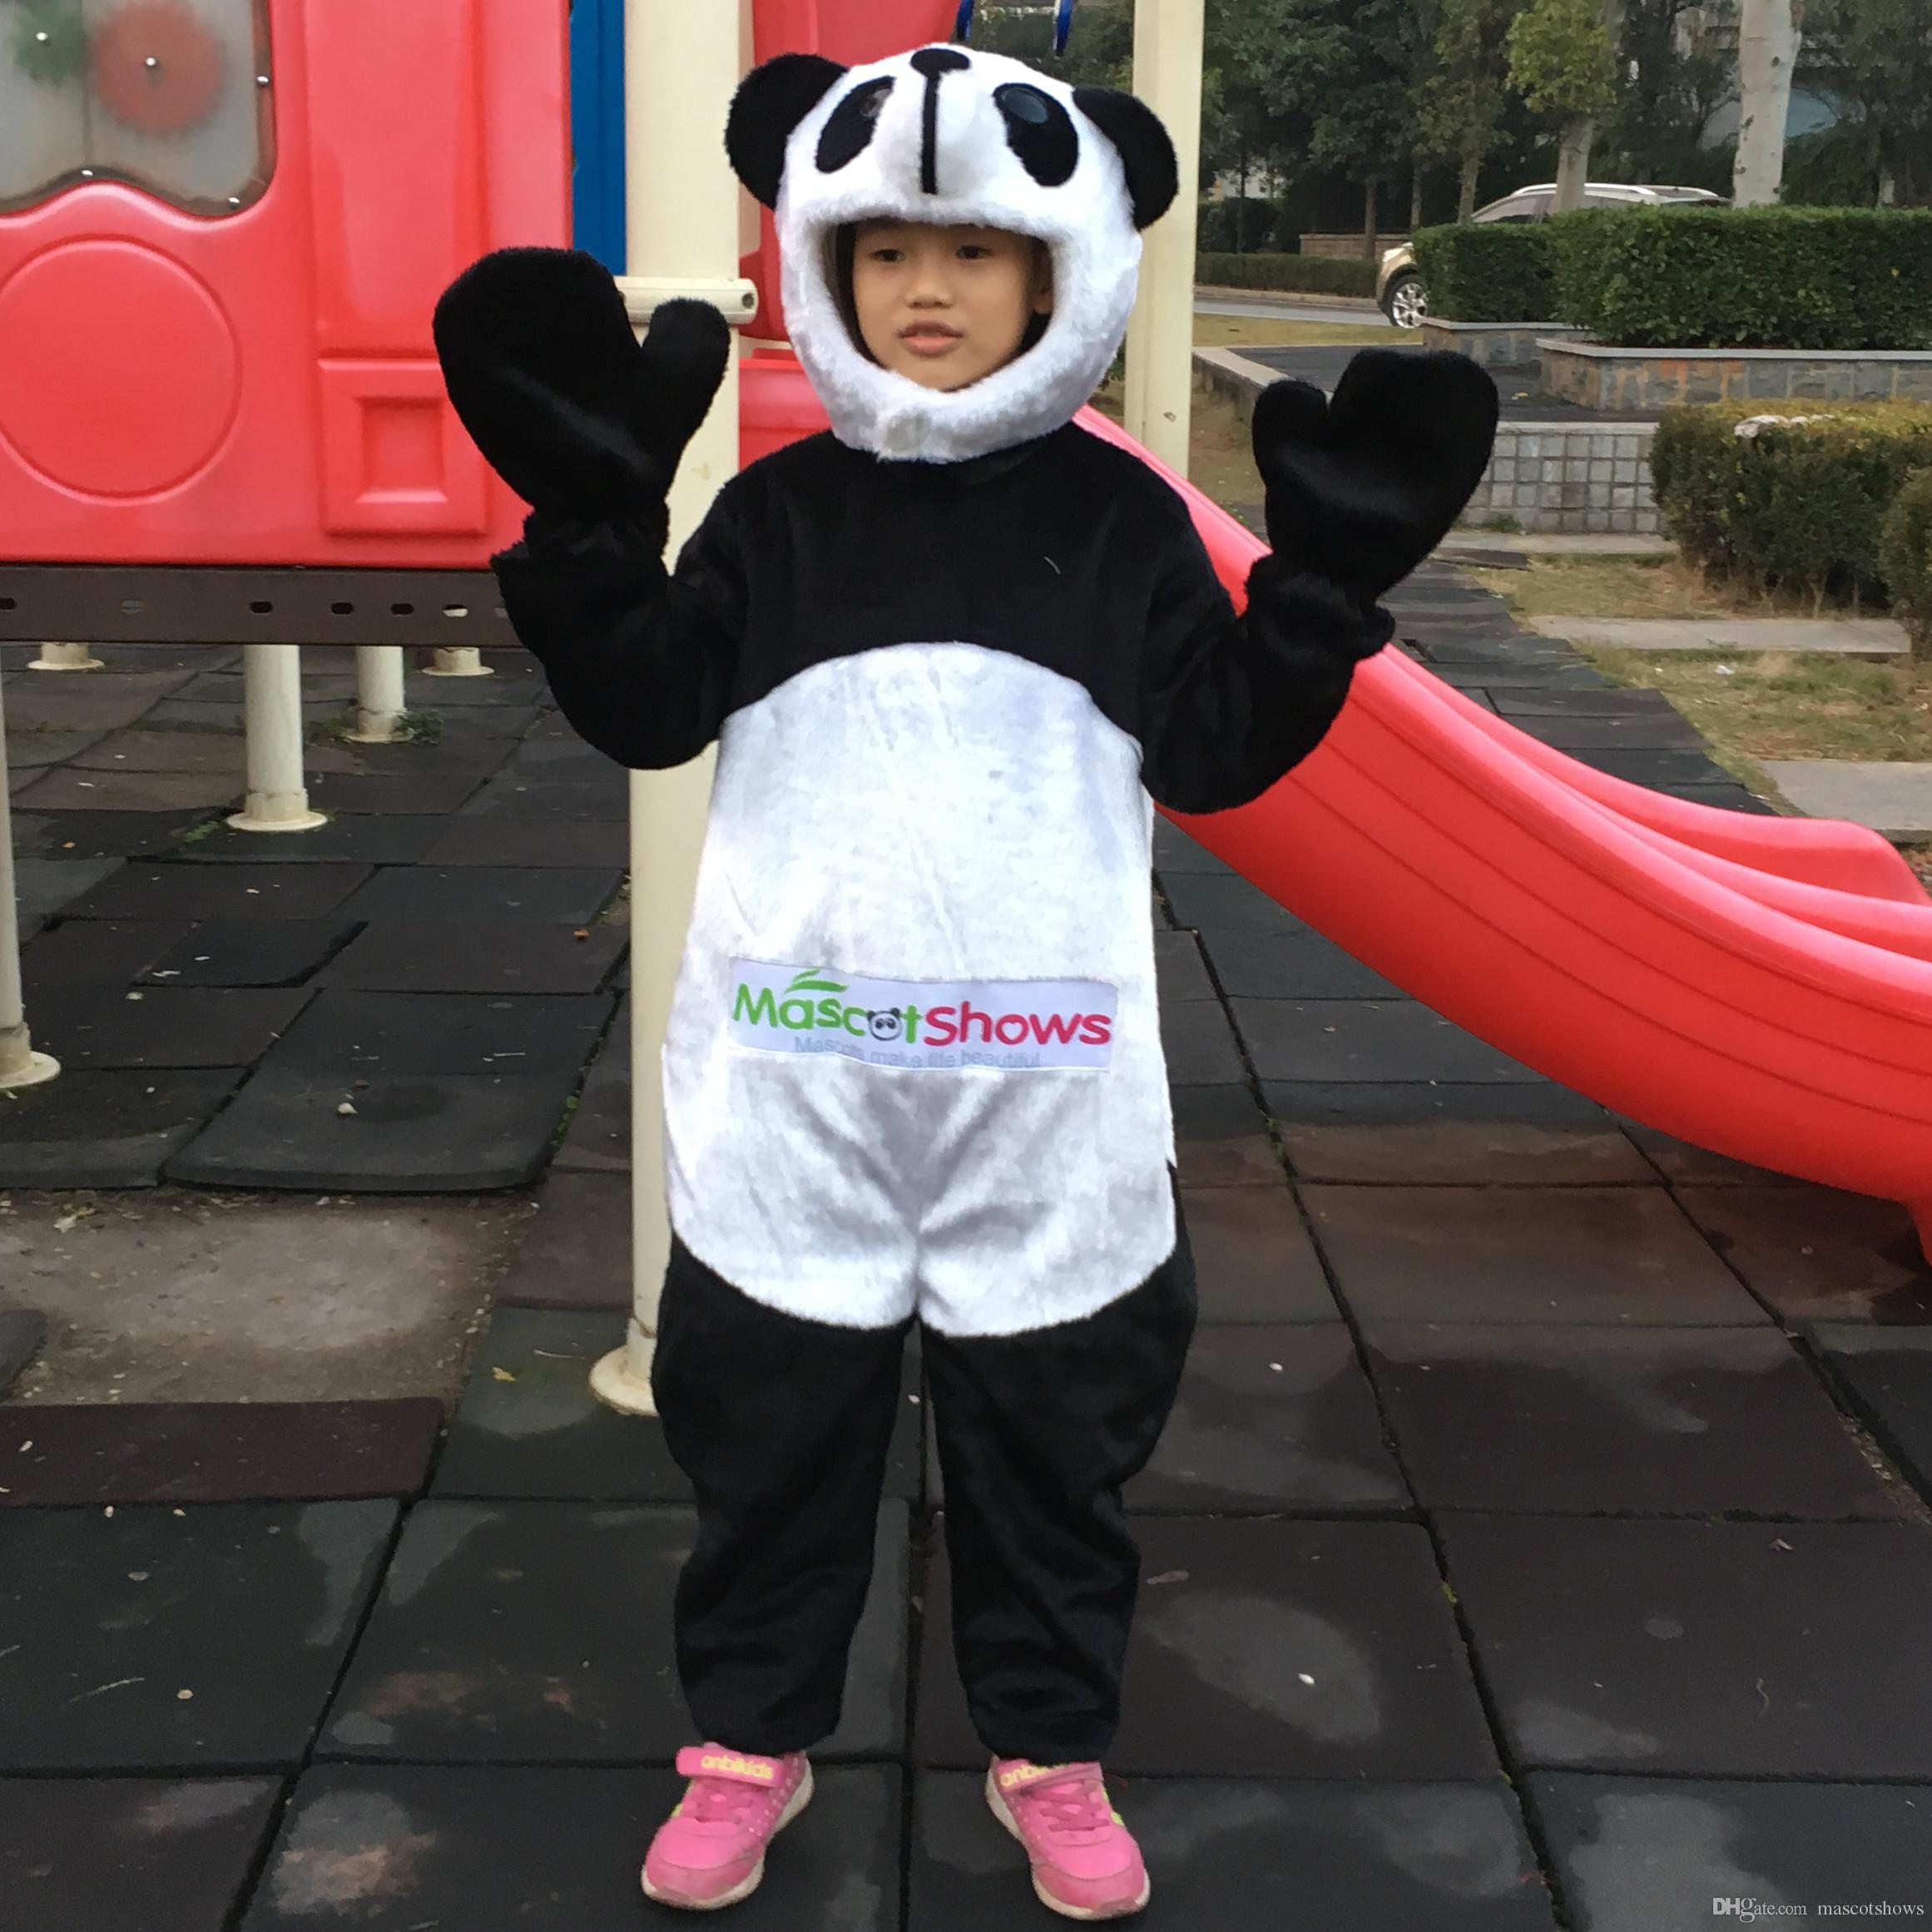 Adorable Show Face Panda Bear Mascot Costume For Kids For Halloween Birthday Party Cartoon Charater Fancy Dress Size 110cm 130cm Mascot Masks Custom Mascot ...  sc 1 st  DHgate.com & Adorable Show Face Panda Bear Mascot Costume For Kids For Halloween ...